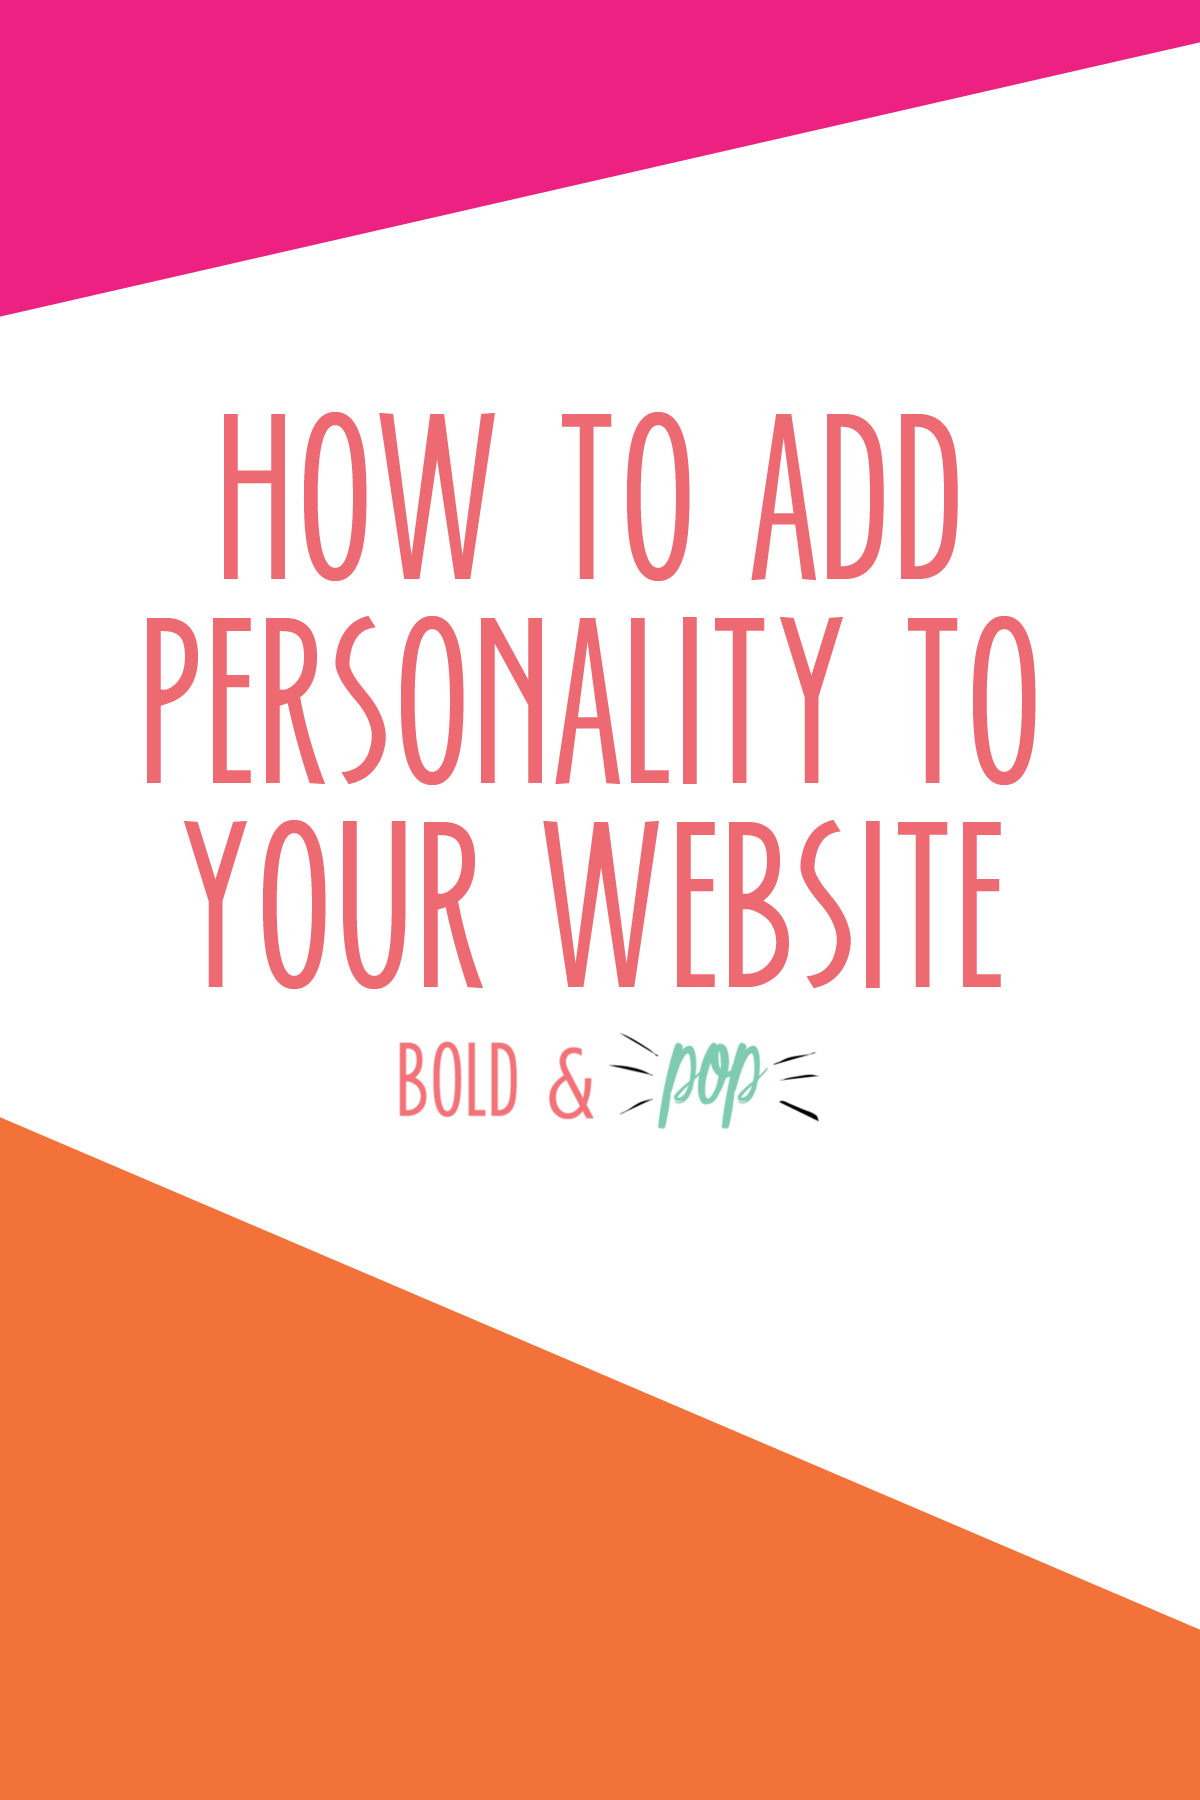 Bold & Pop : How to Add Personality to Your Website